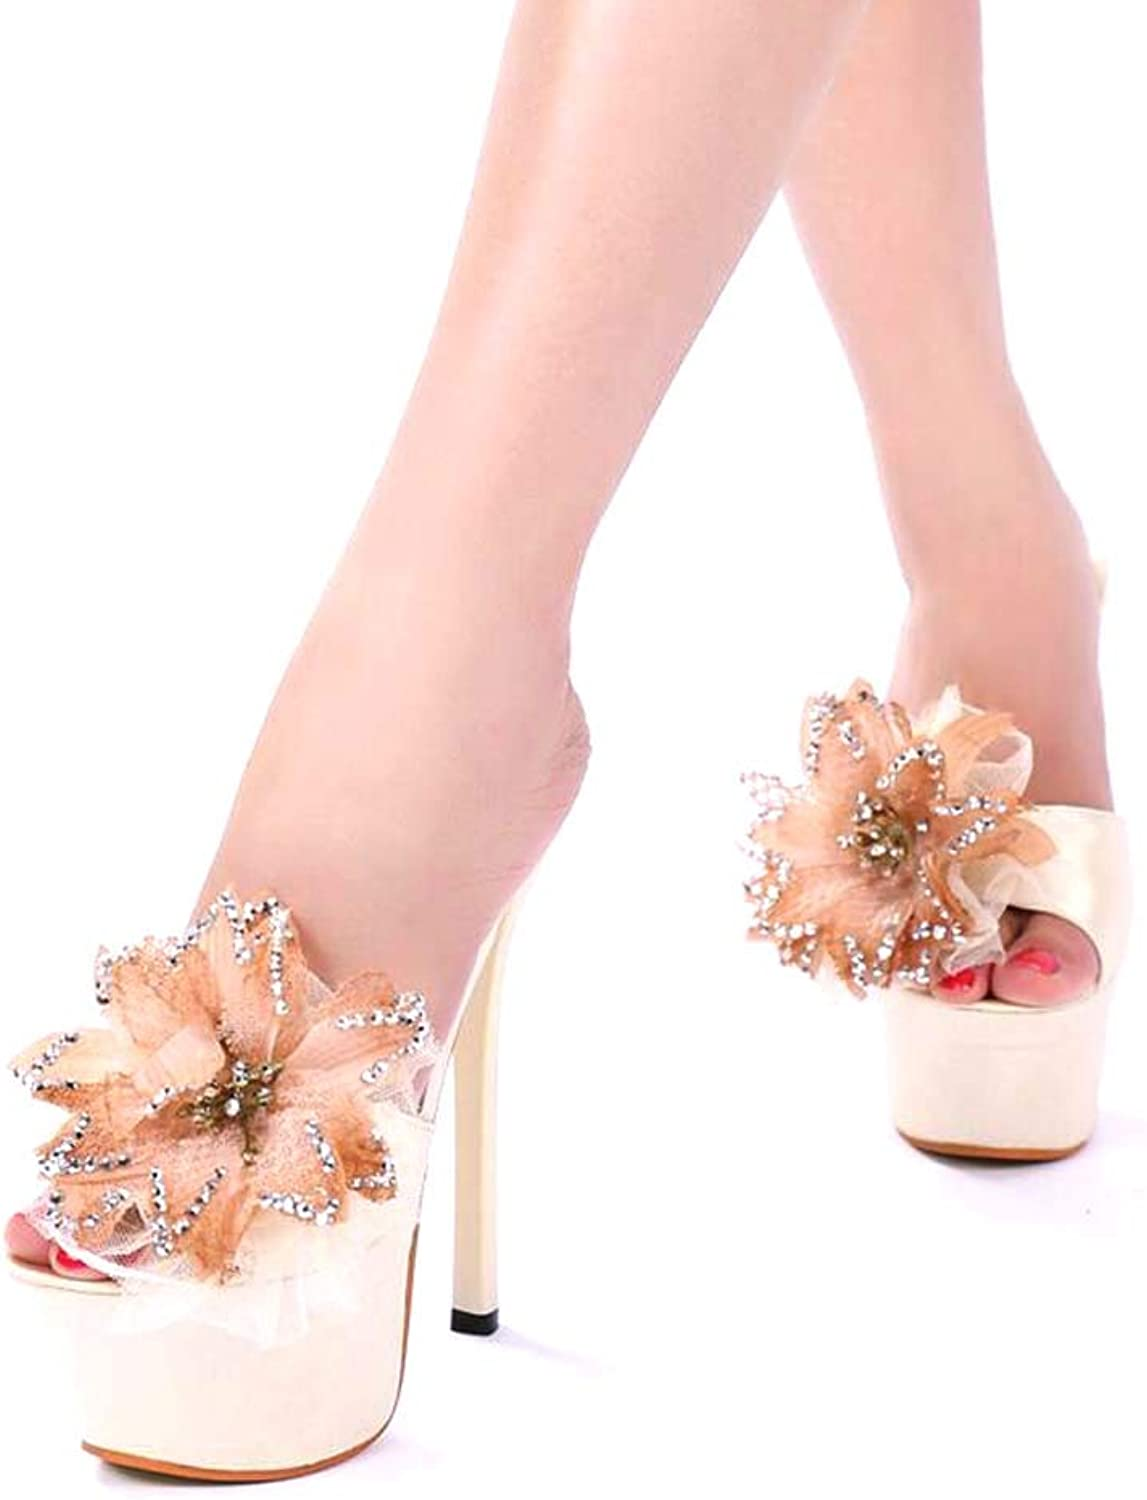 15 cm Bow Tie Slipper Mules,Women's shoes,Slippers Heels,Casual Party Beautiful Geblackus High Heels Lace Bow